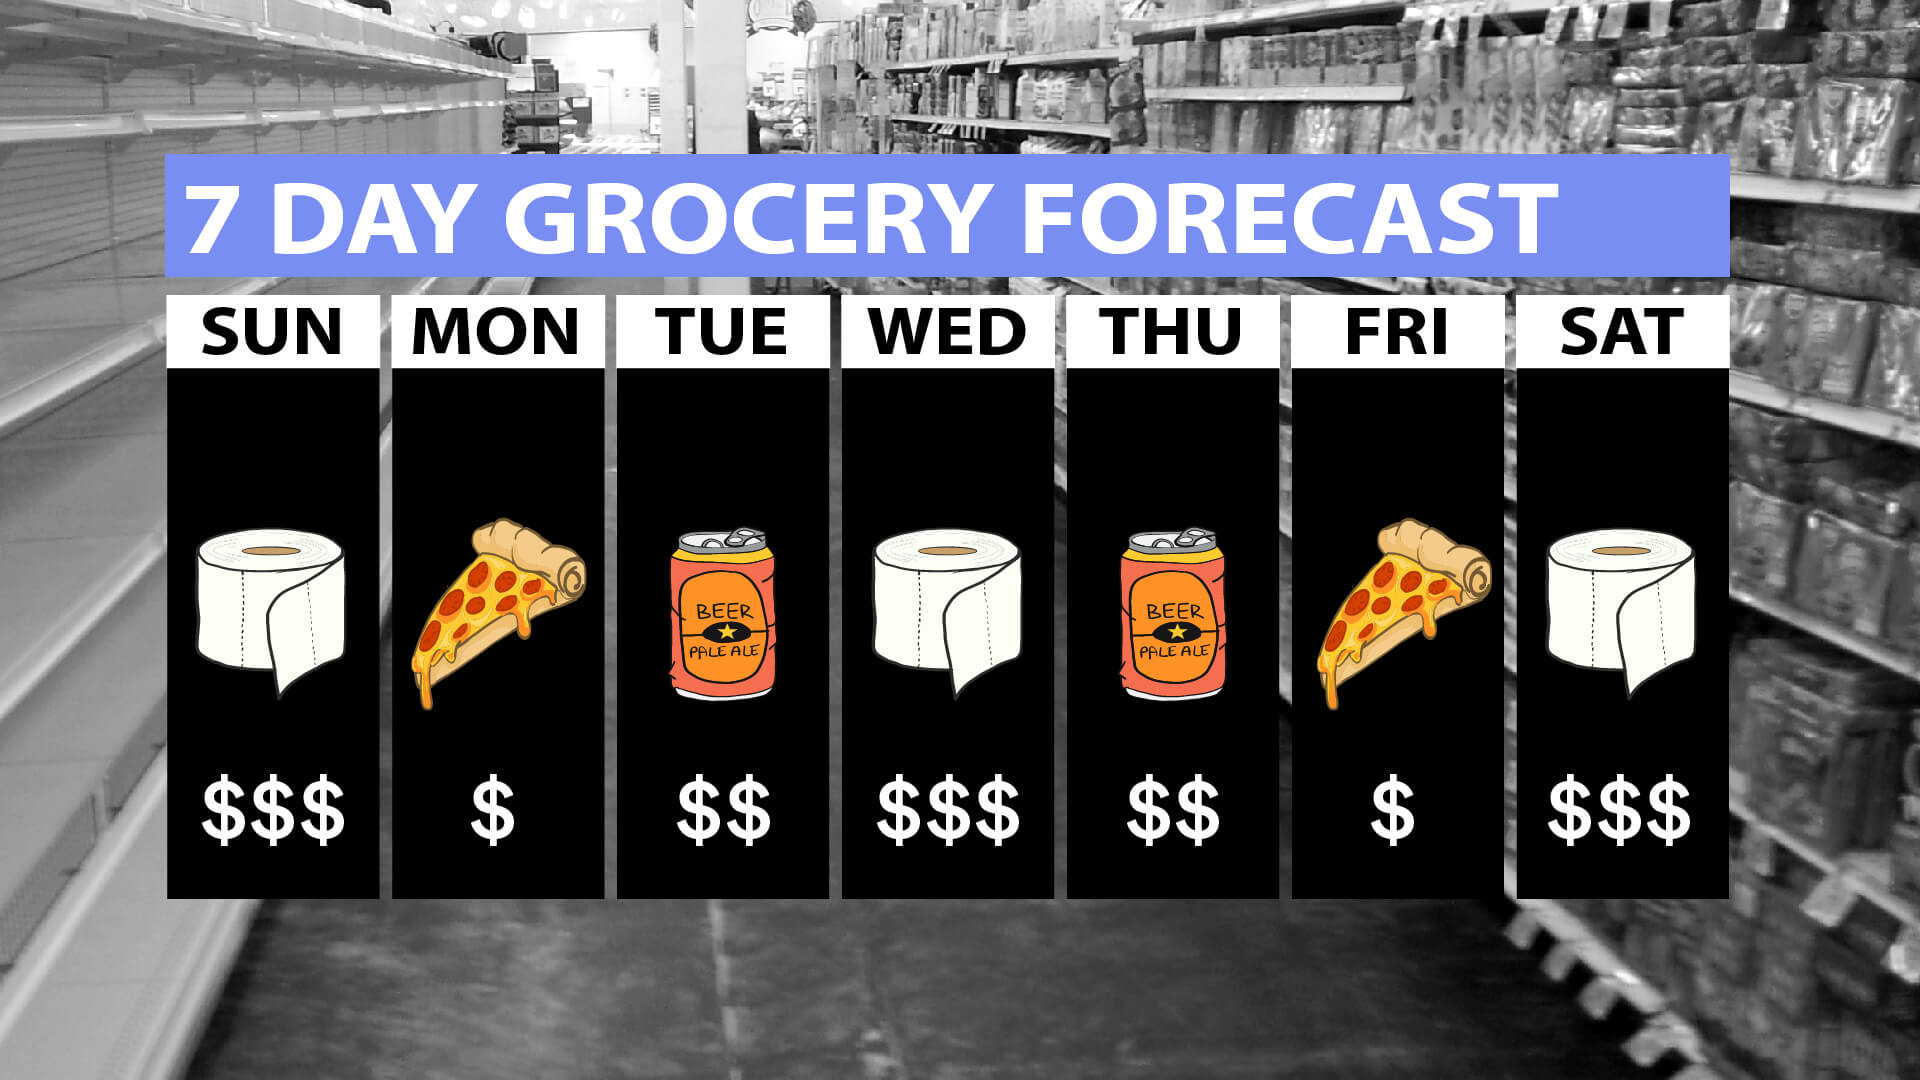 7-day grocery forecast with toilet paper, frozen pizza, and beer on grocery aisle black and white photo. January 2021